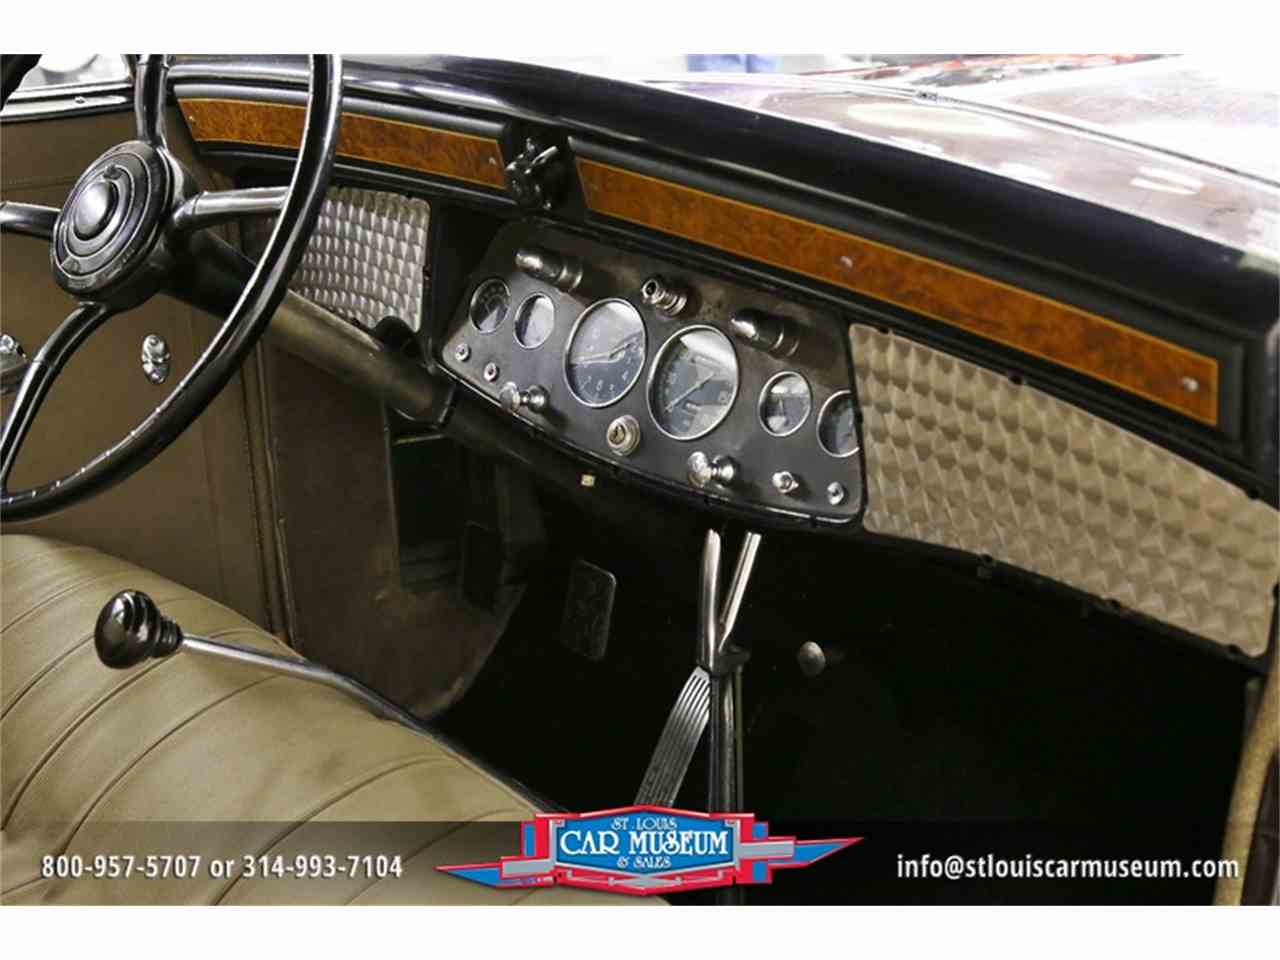 Large Picture of '31 Cadillac V-16 Madam X Landau Sedan located in Missouri Offered by St. Louis Car Museum - JSU3